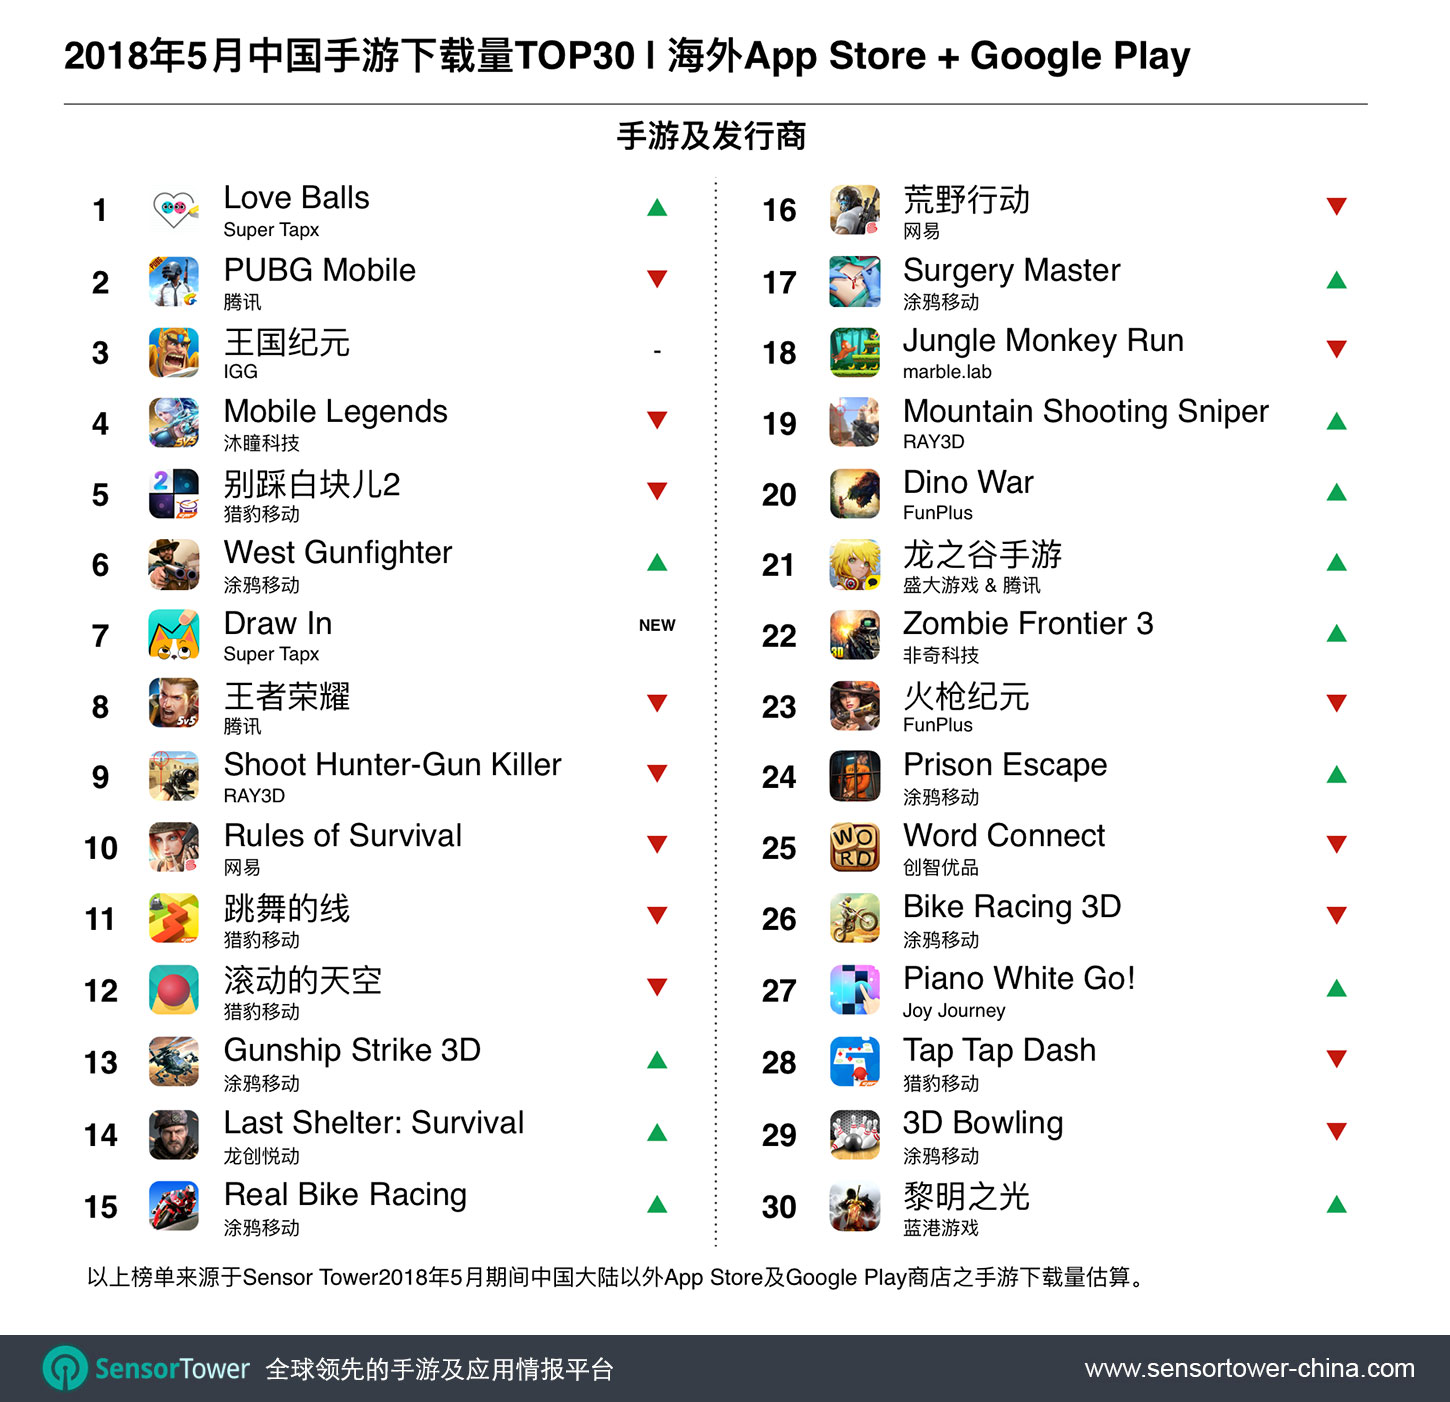 Madison : Most downloaded games app store 2018